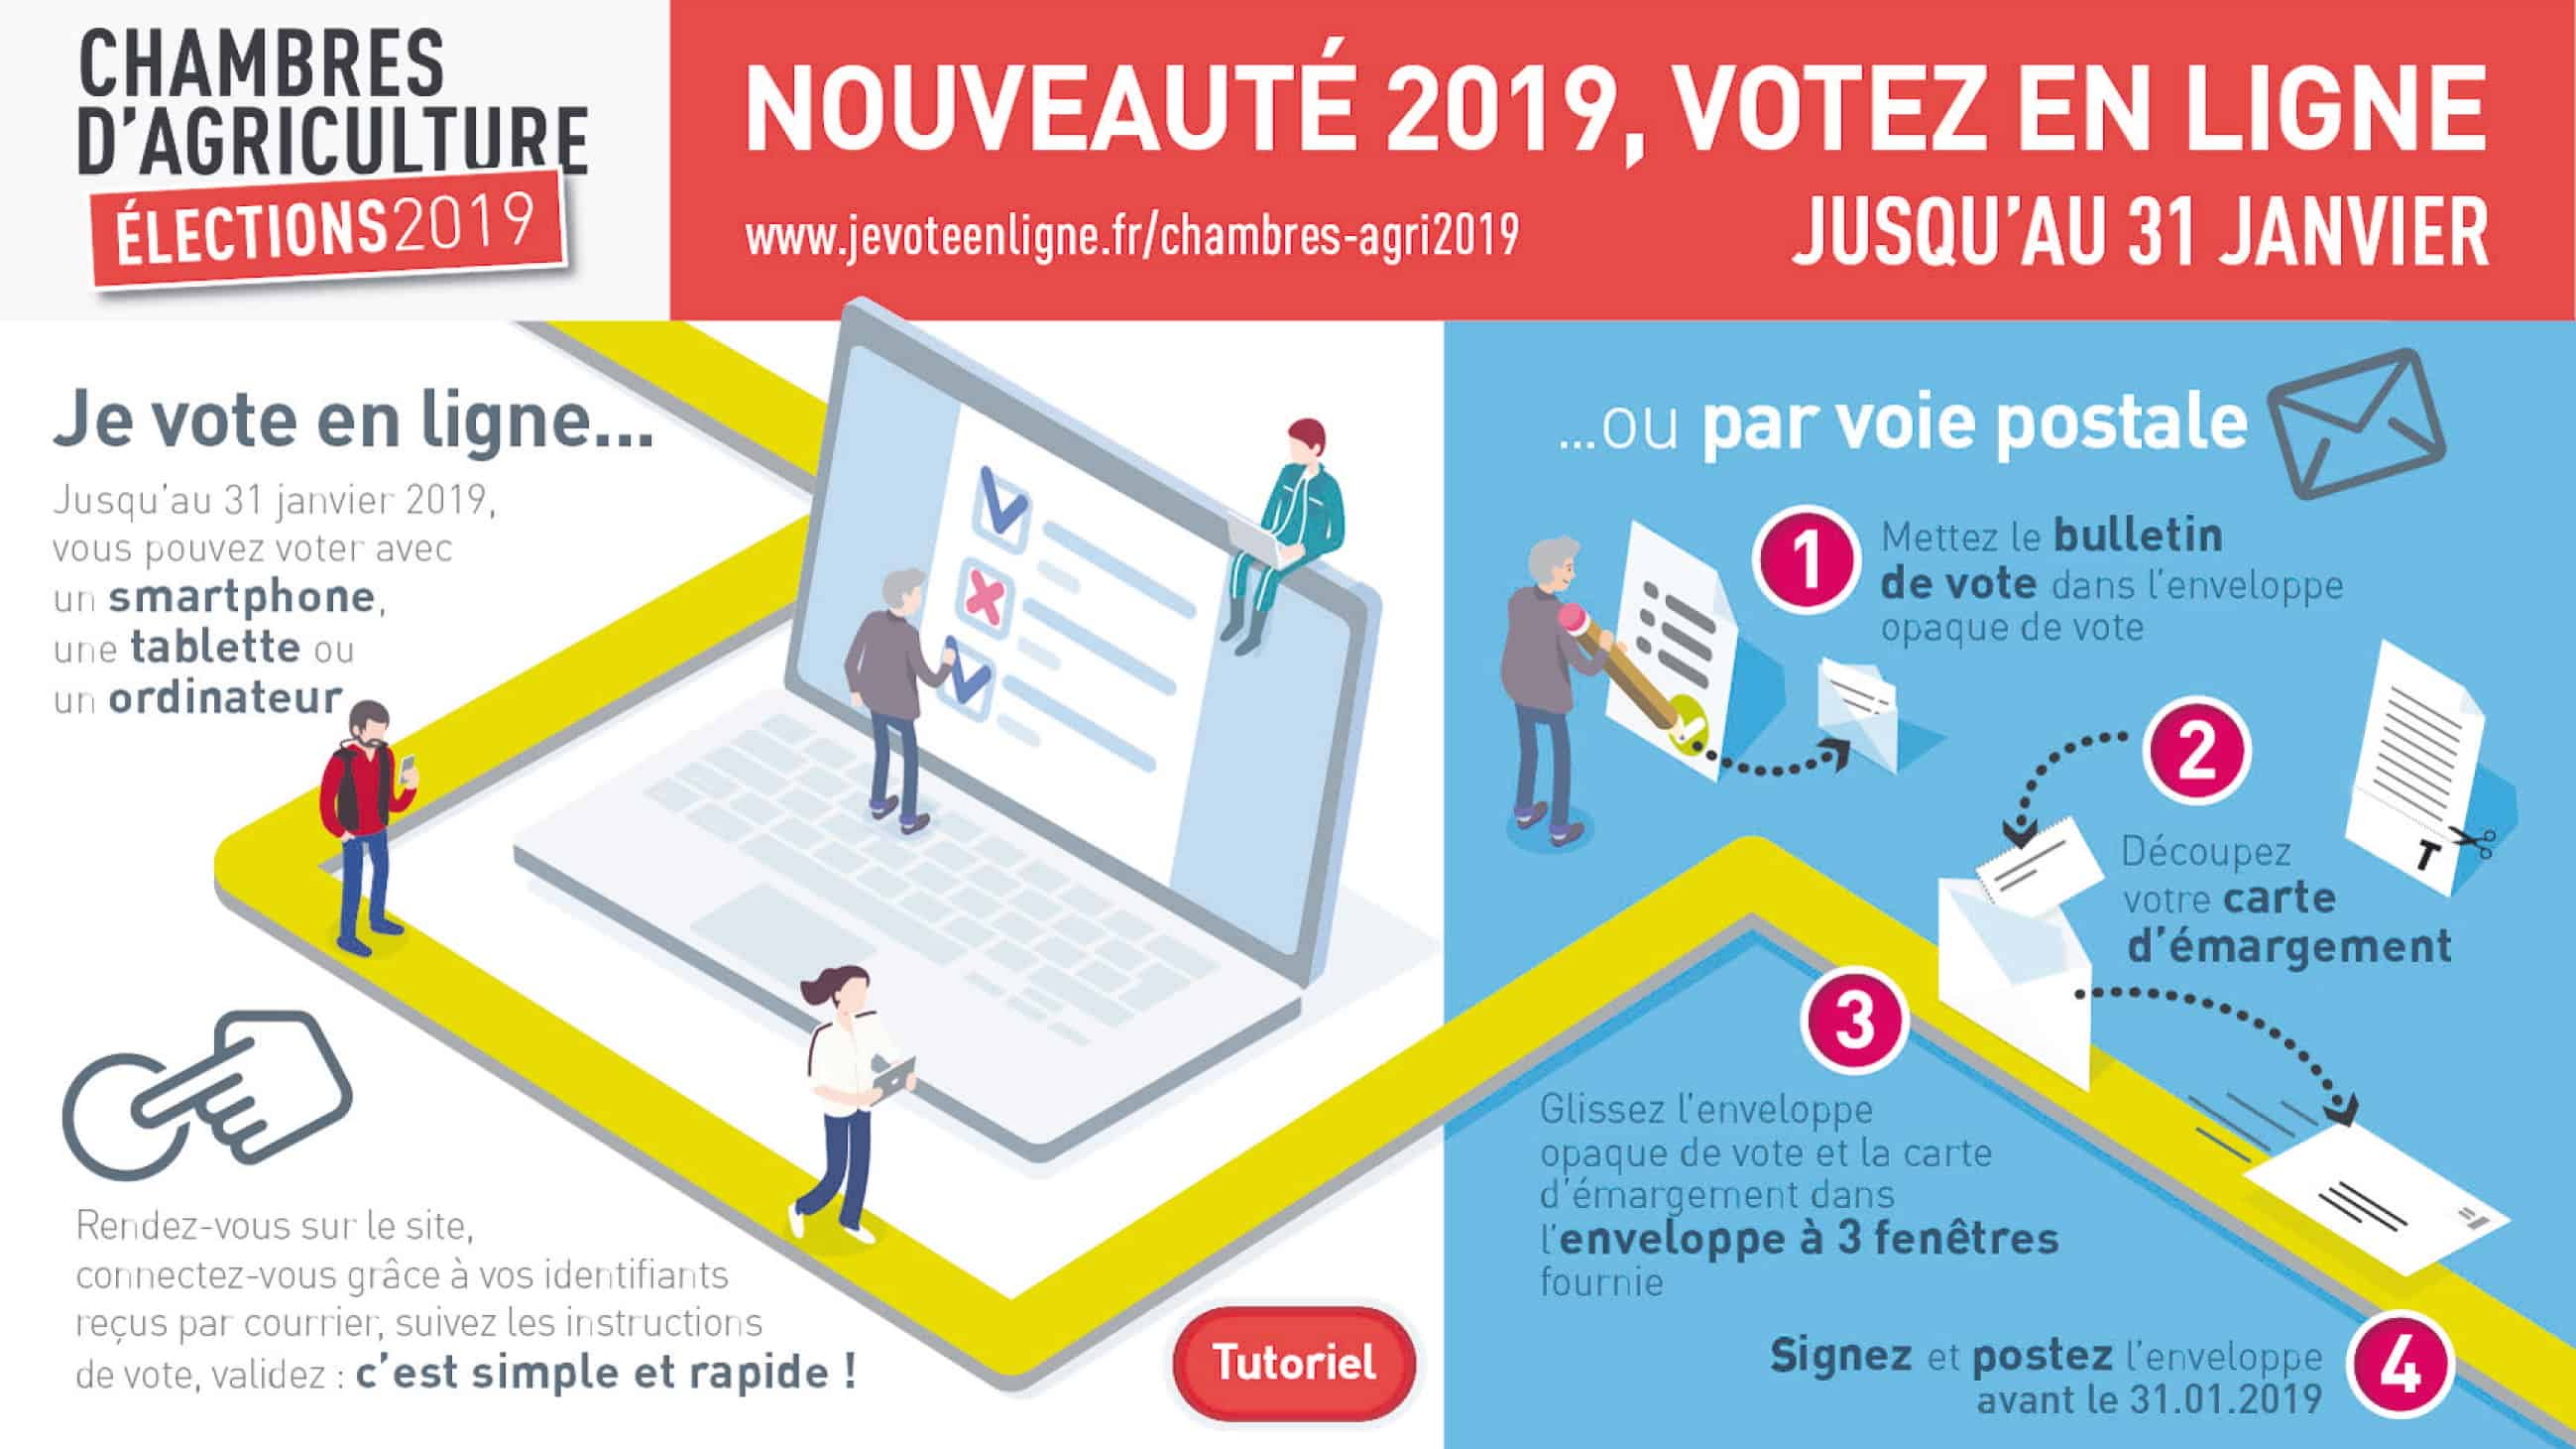 elections chambres agriculture votes